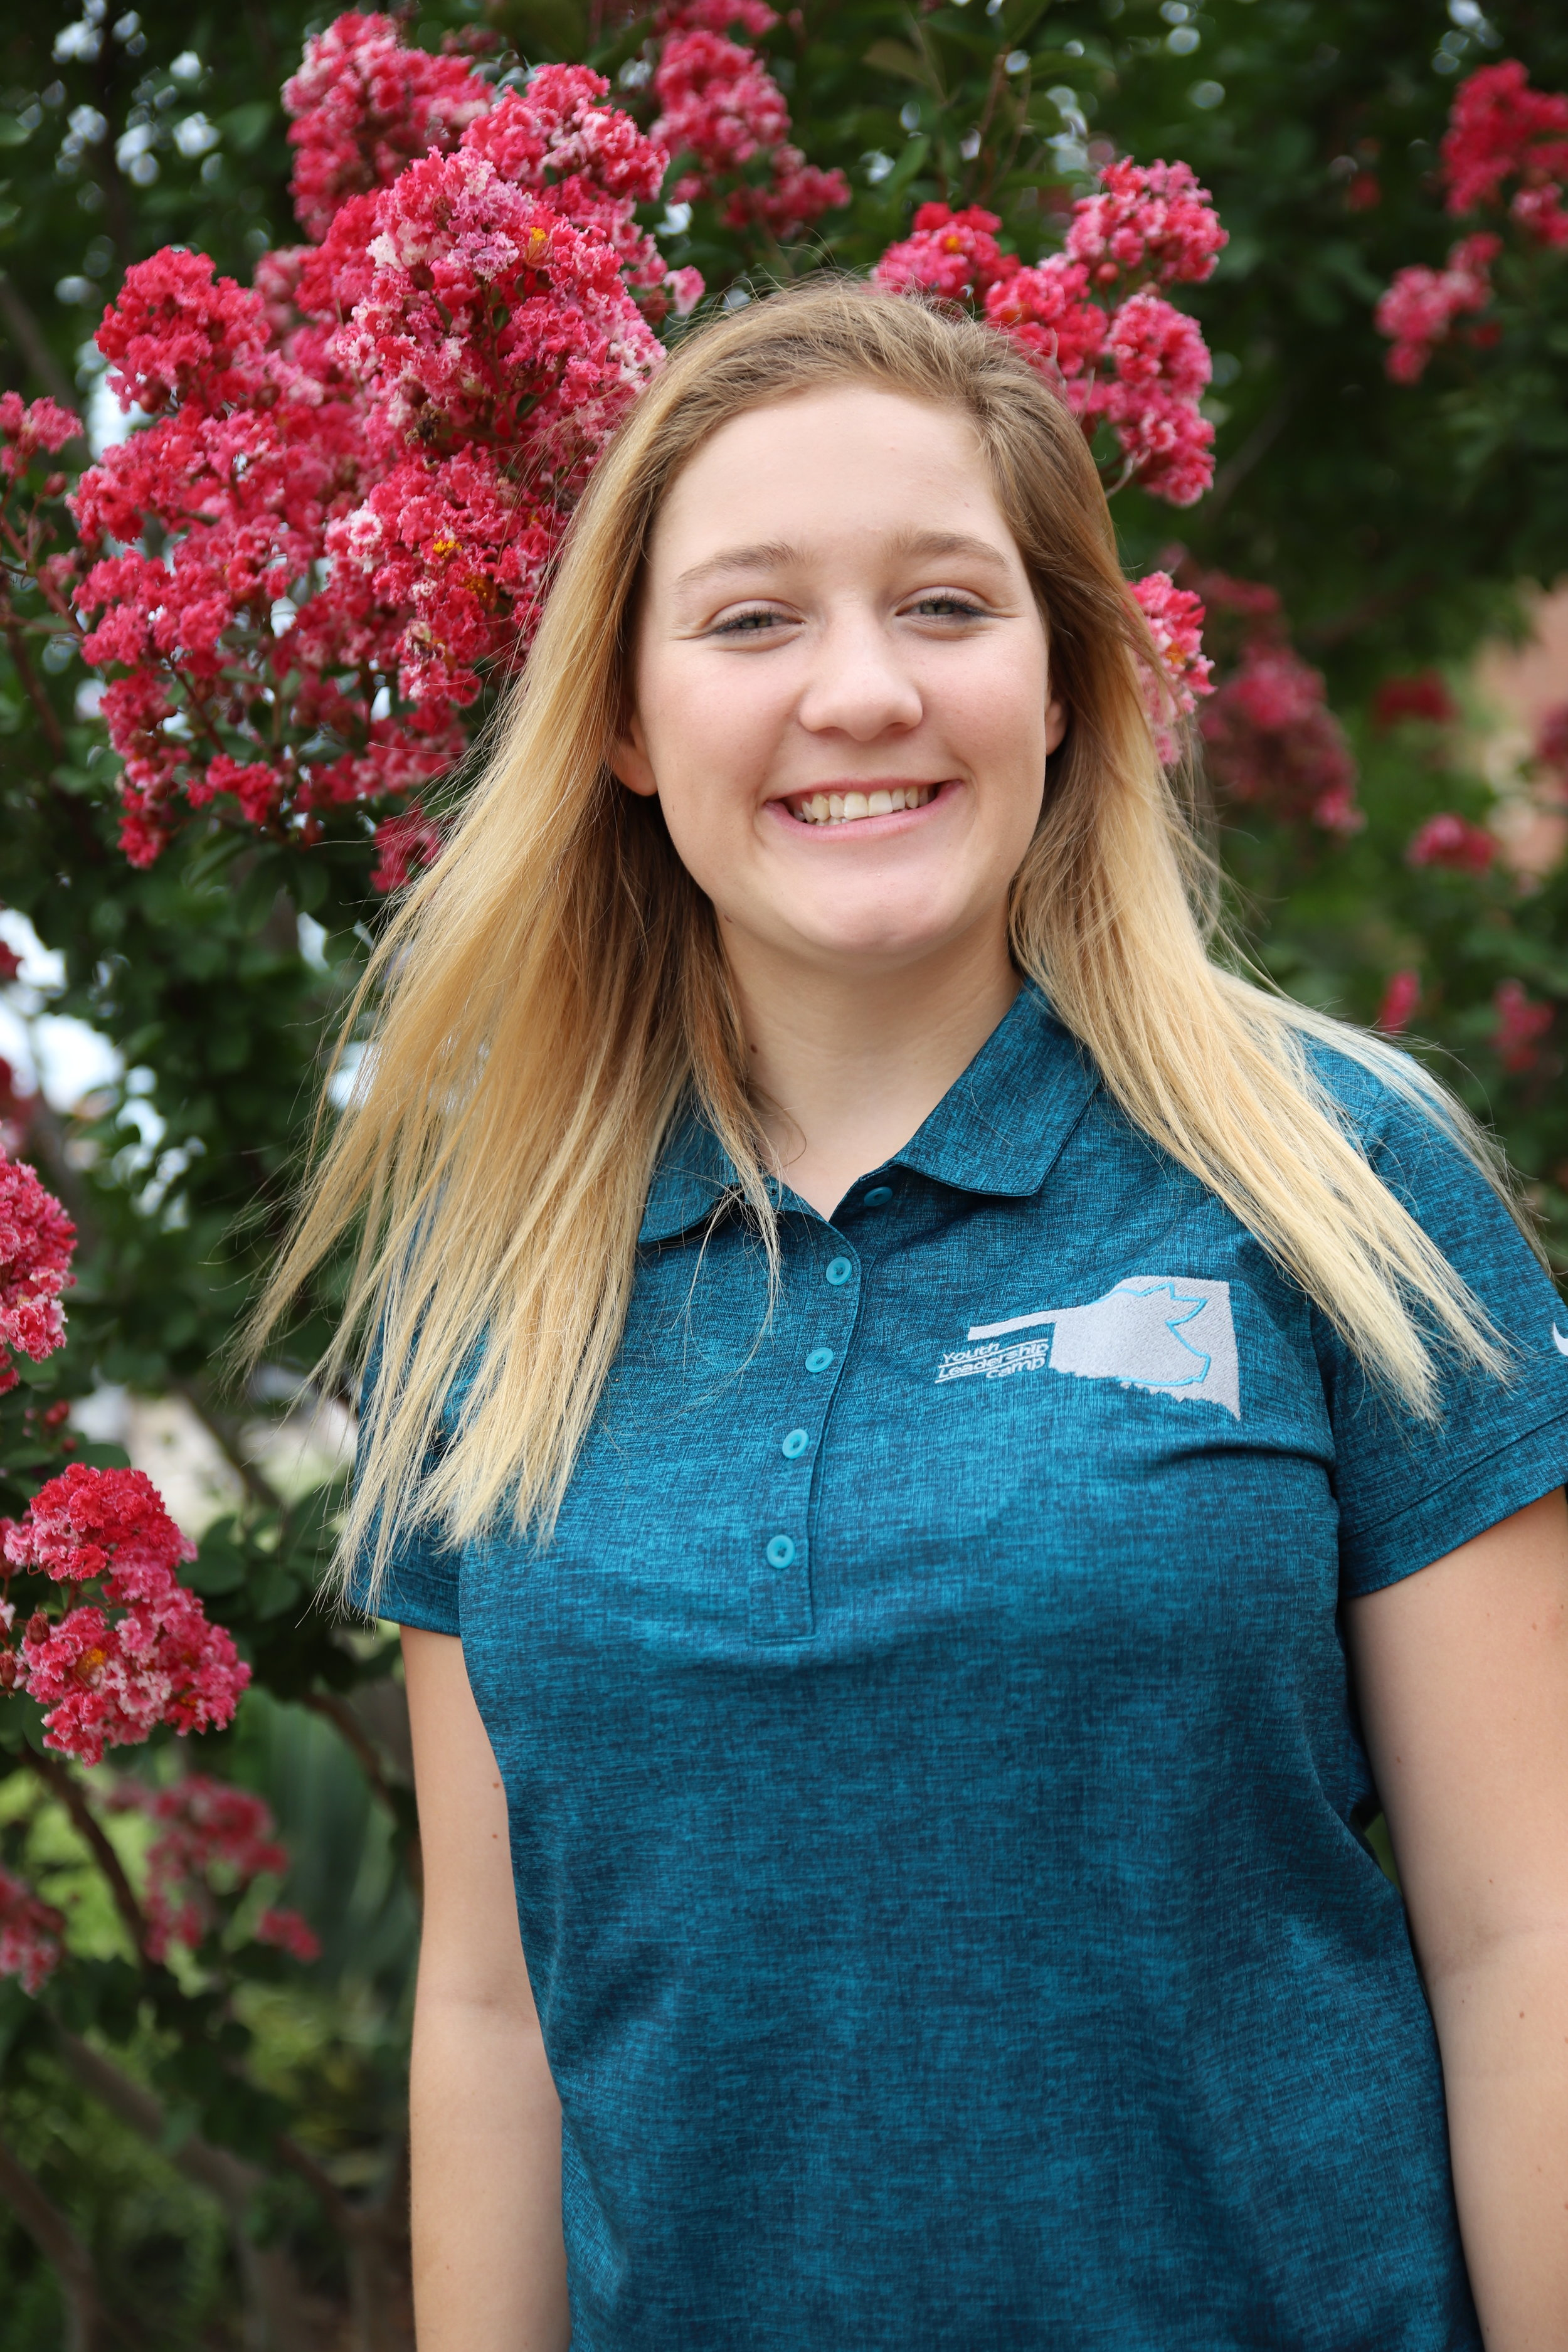 """""""My favorite part about camp was going to OSU and being able to learn the process of harvesting pigs and then being able to compare that same process to what is done at the Seaboard plant,"""" said Brooklyn Barnes, Sand Springs, Okla."""